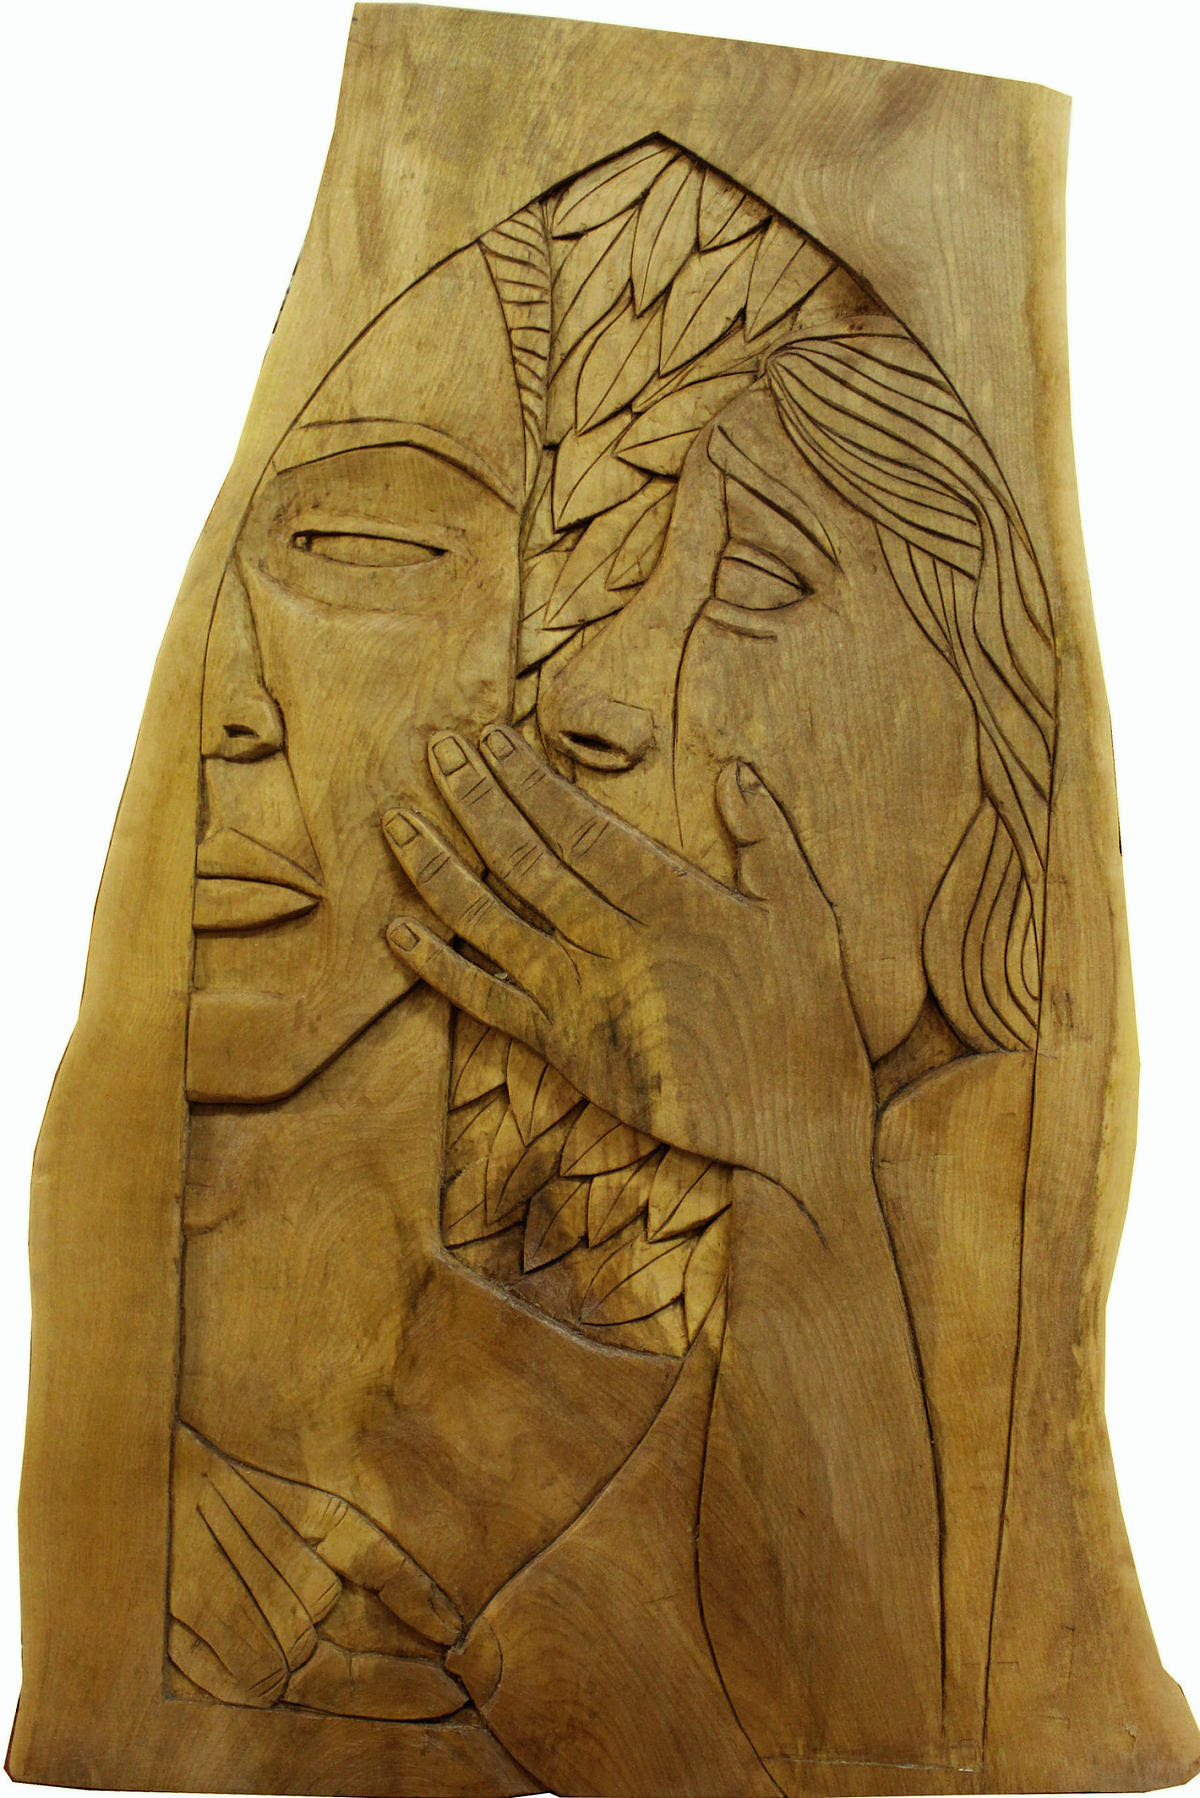 A classical approach to wood carving